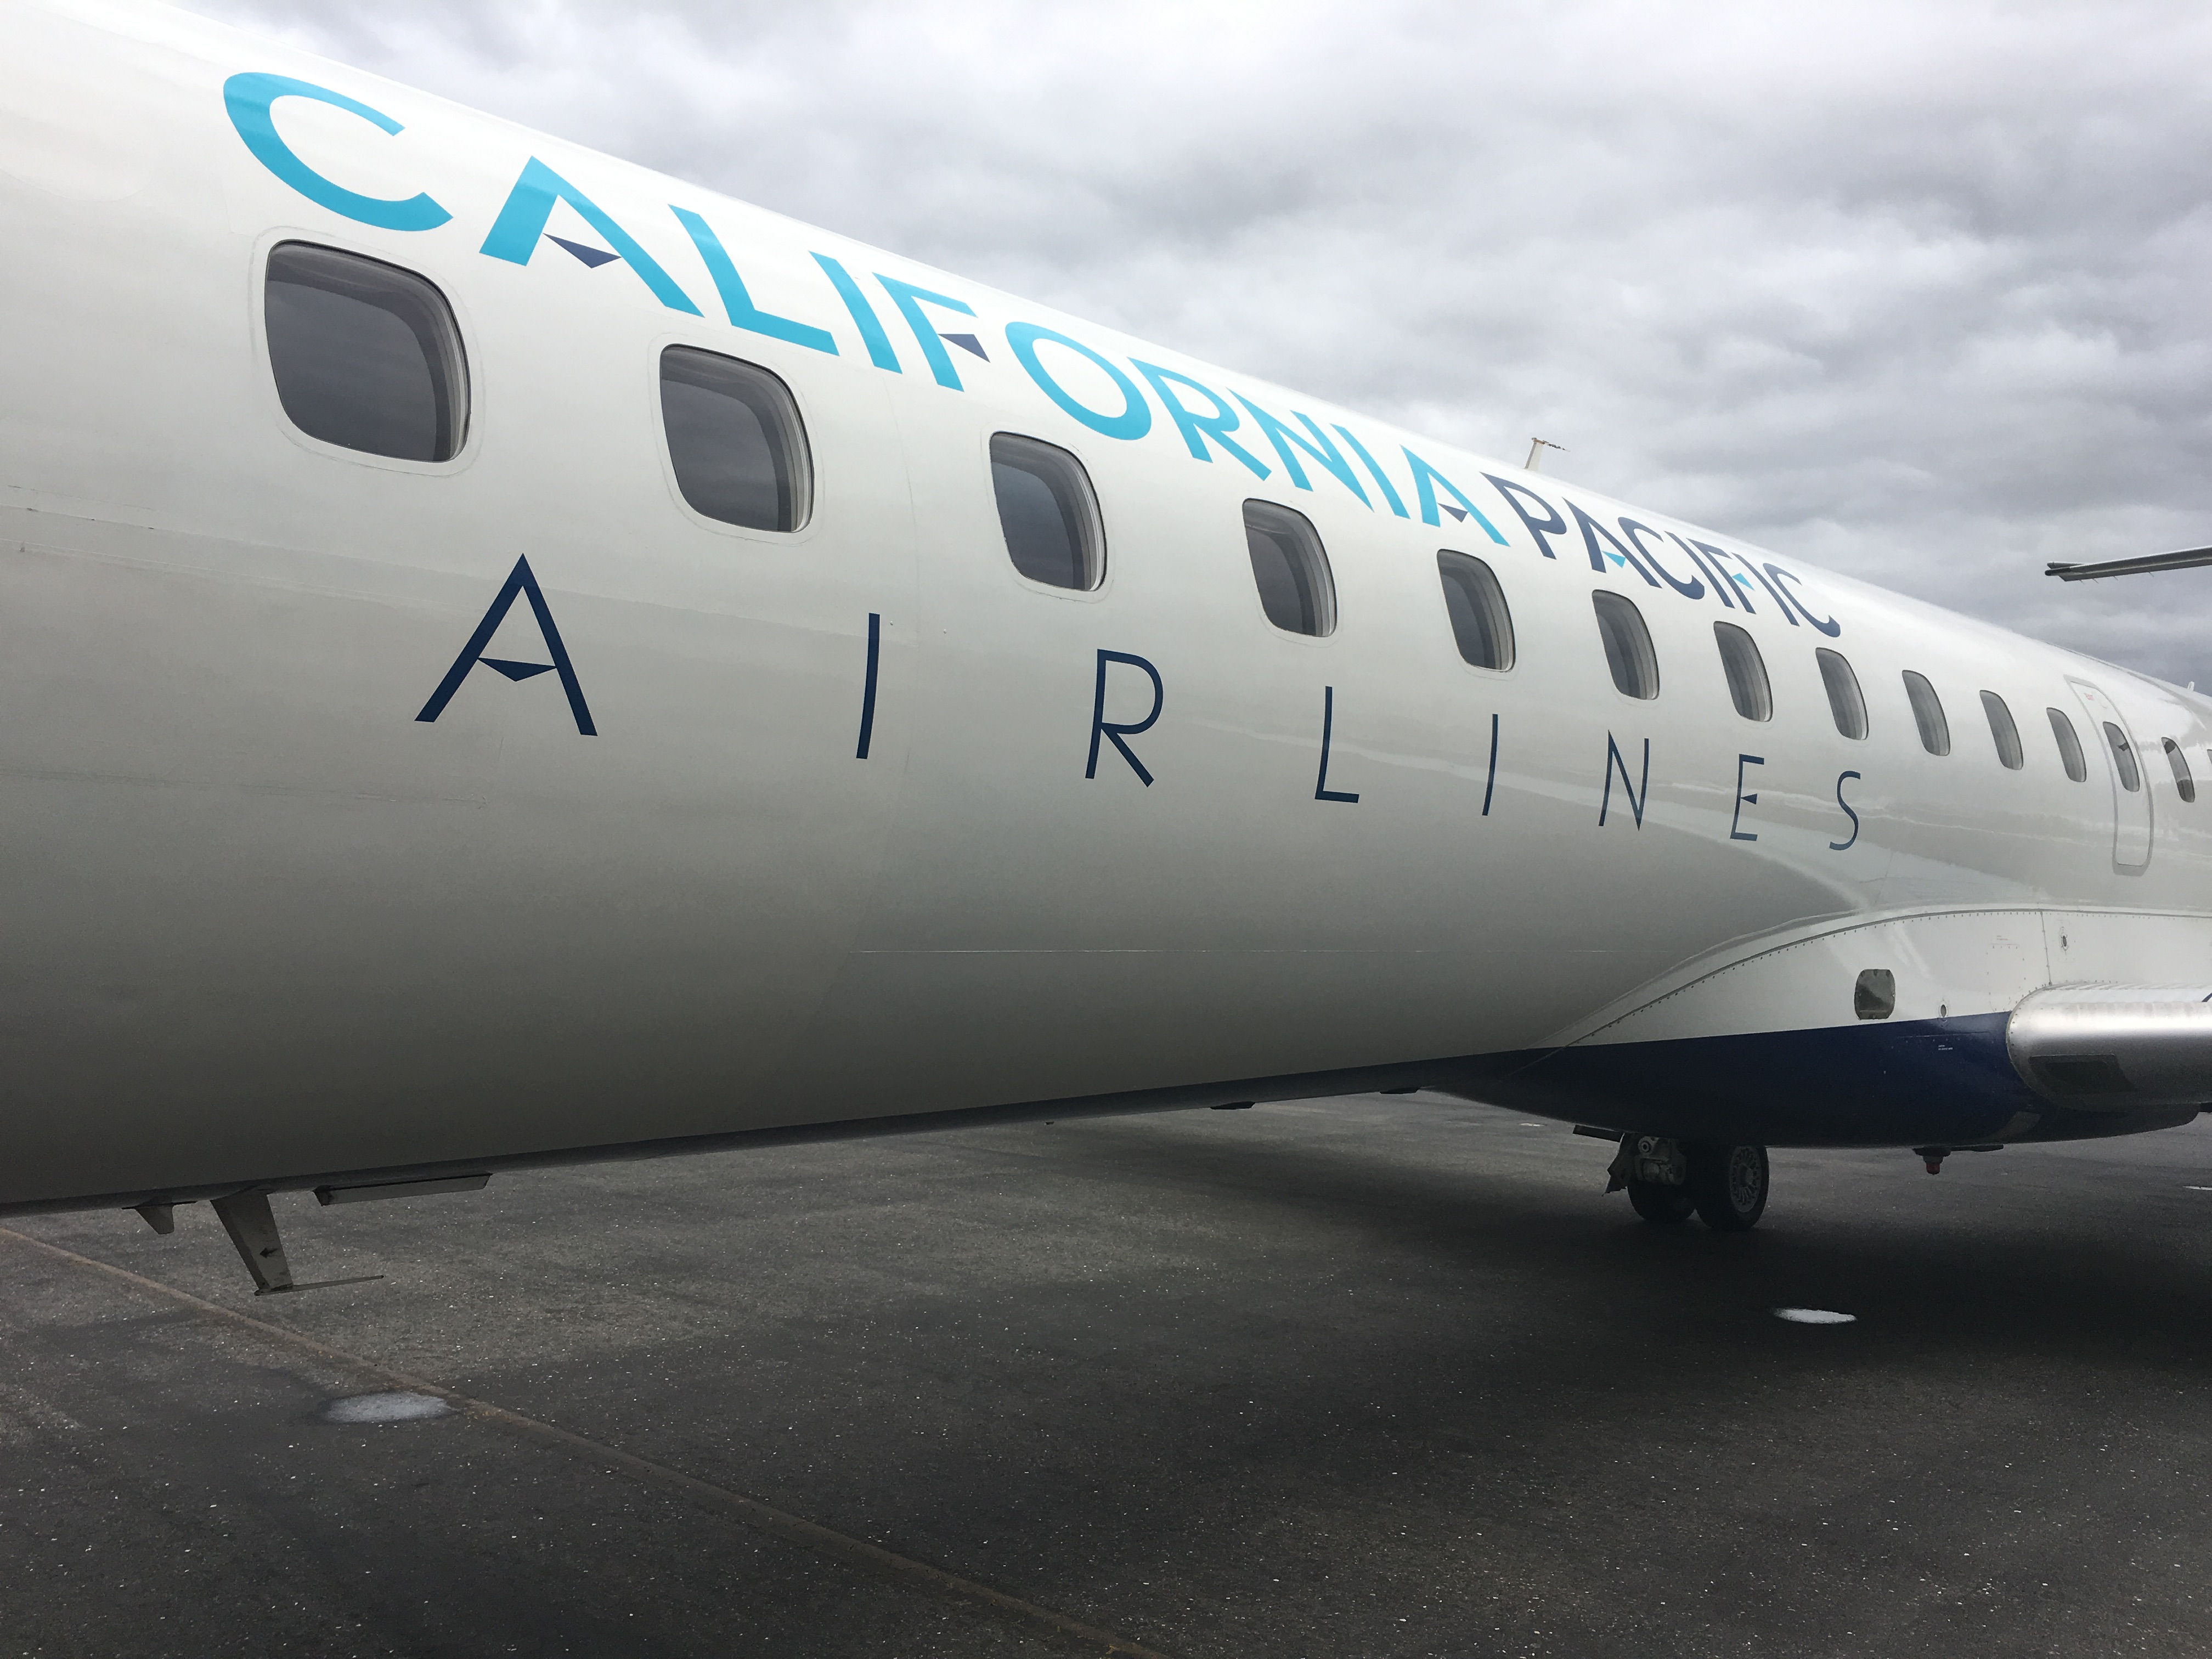 California Pacific Airlines to hit the skies Nov. 1